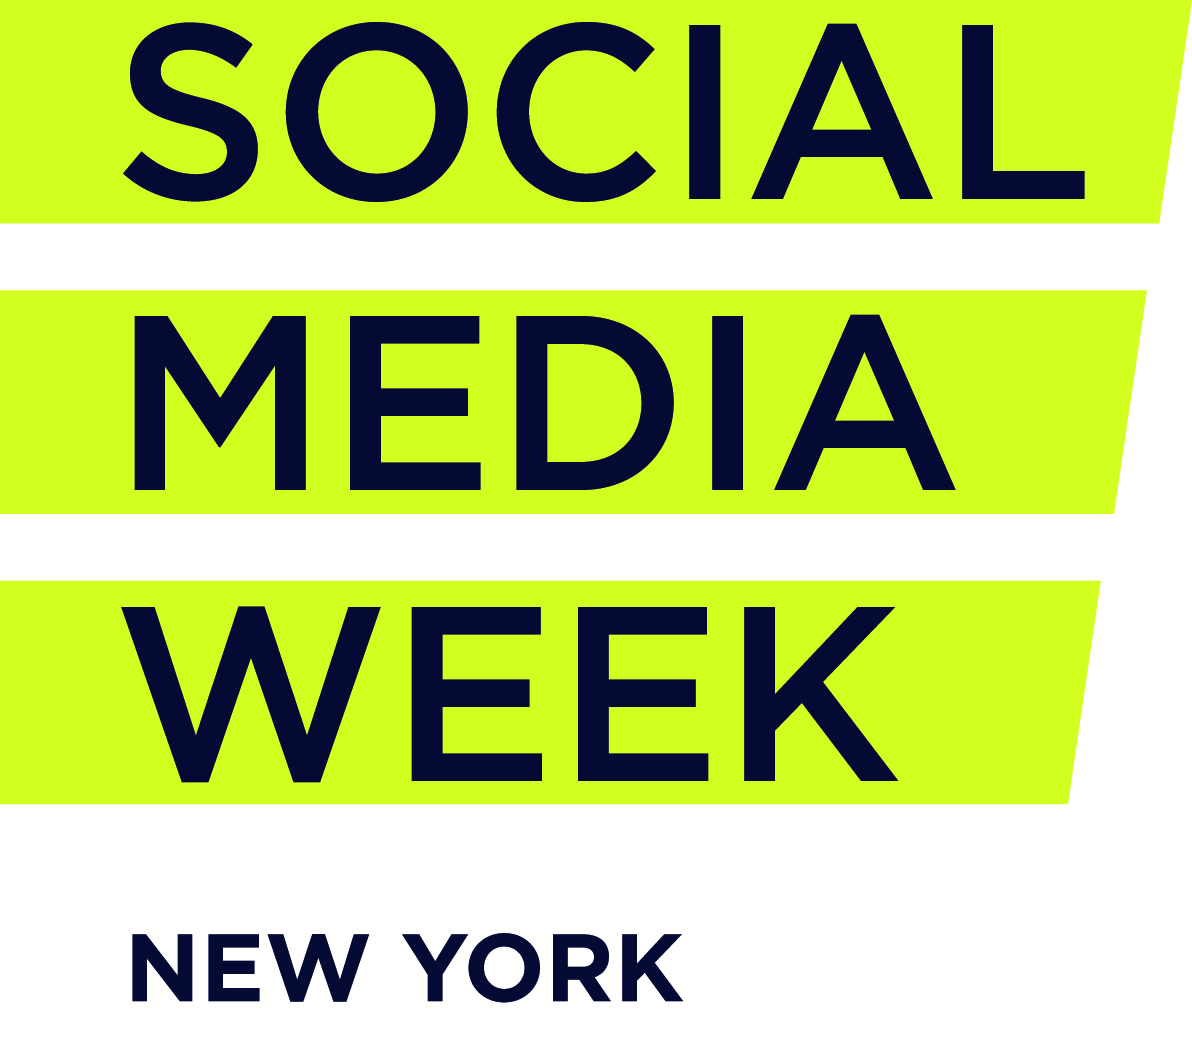 Social Media Week | April 24-27 NY, USA